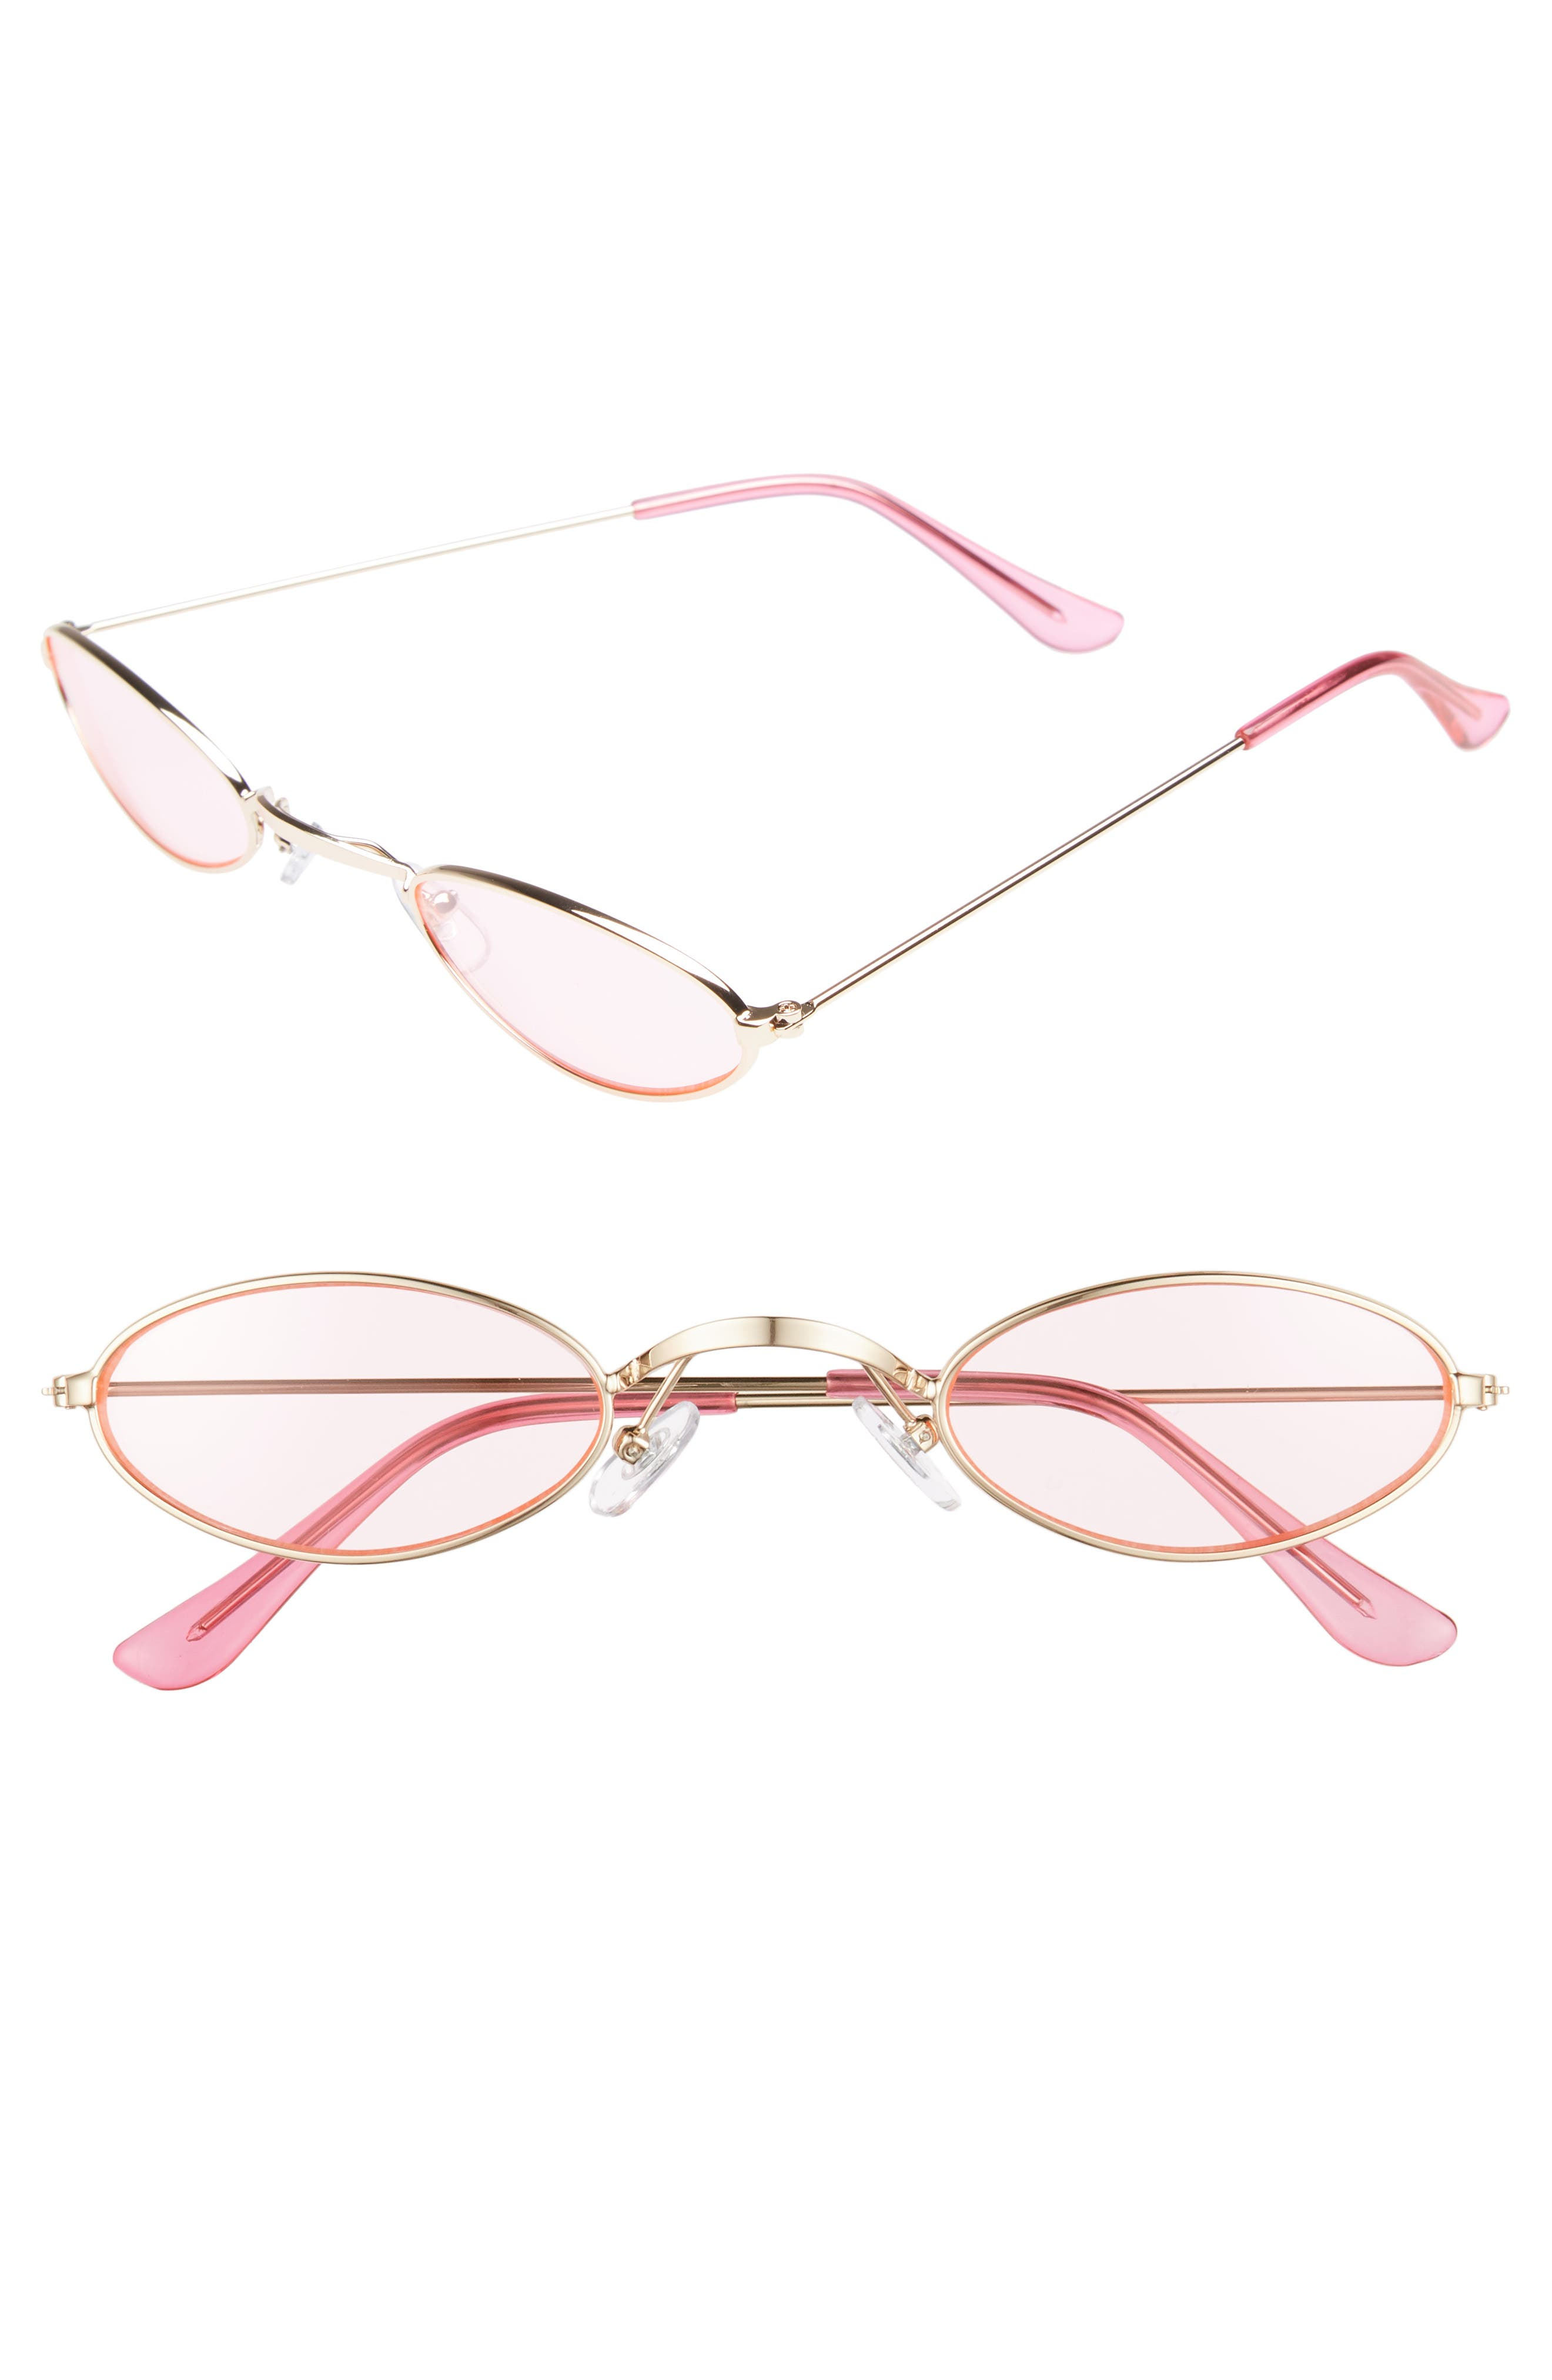 48mm Mini Wide Oval Metal Sunglasses,                             Main thumbnail 1, color,                             PINK/ GOLD